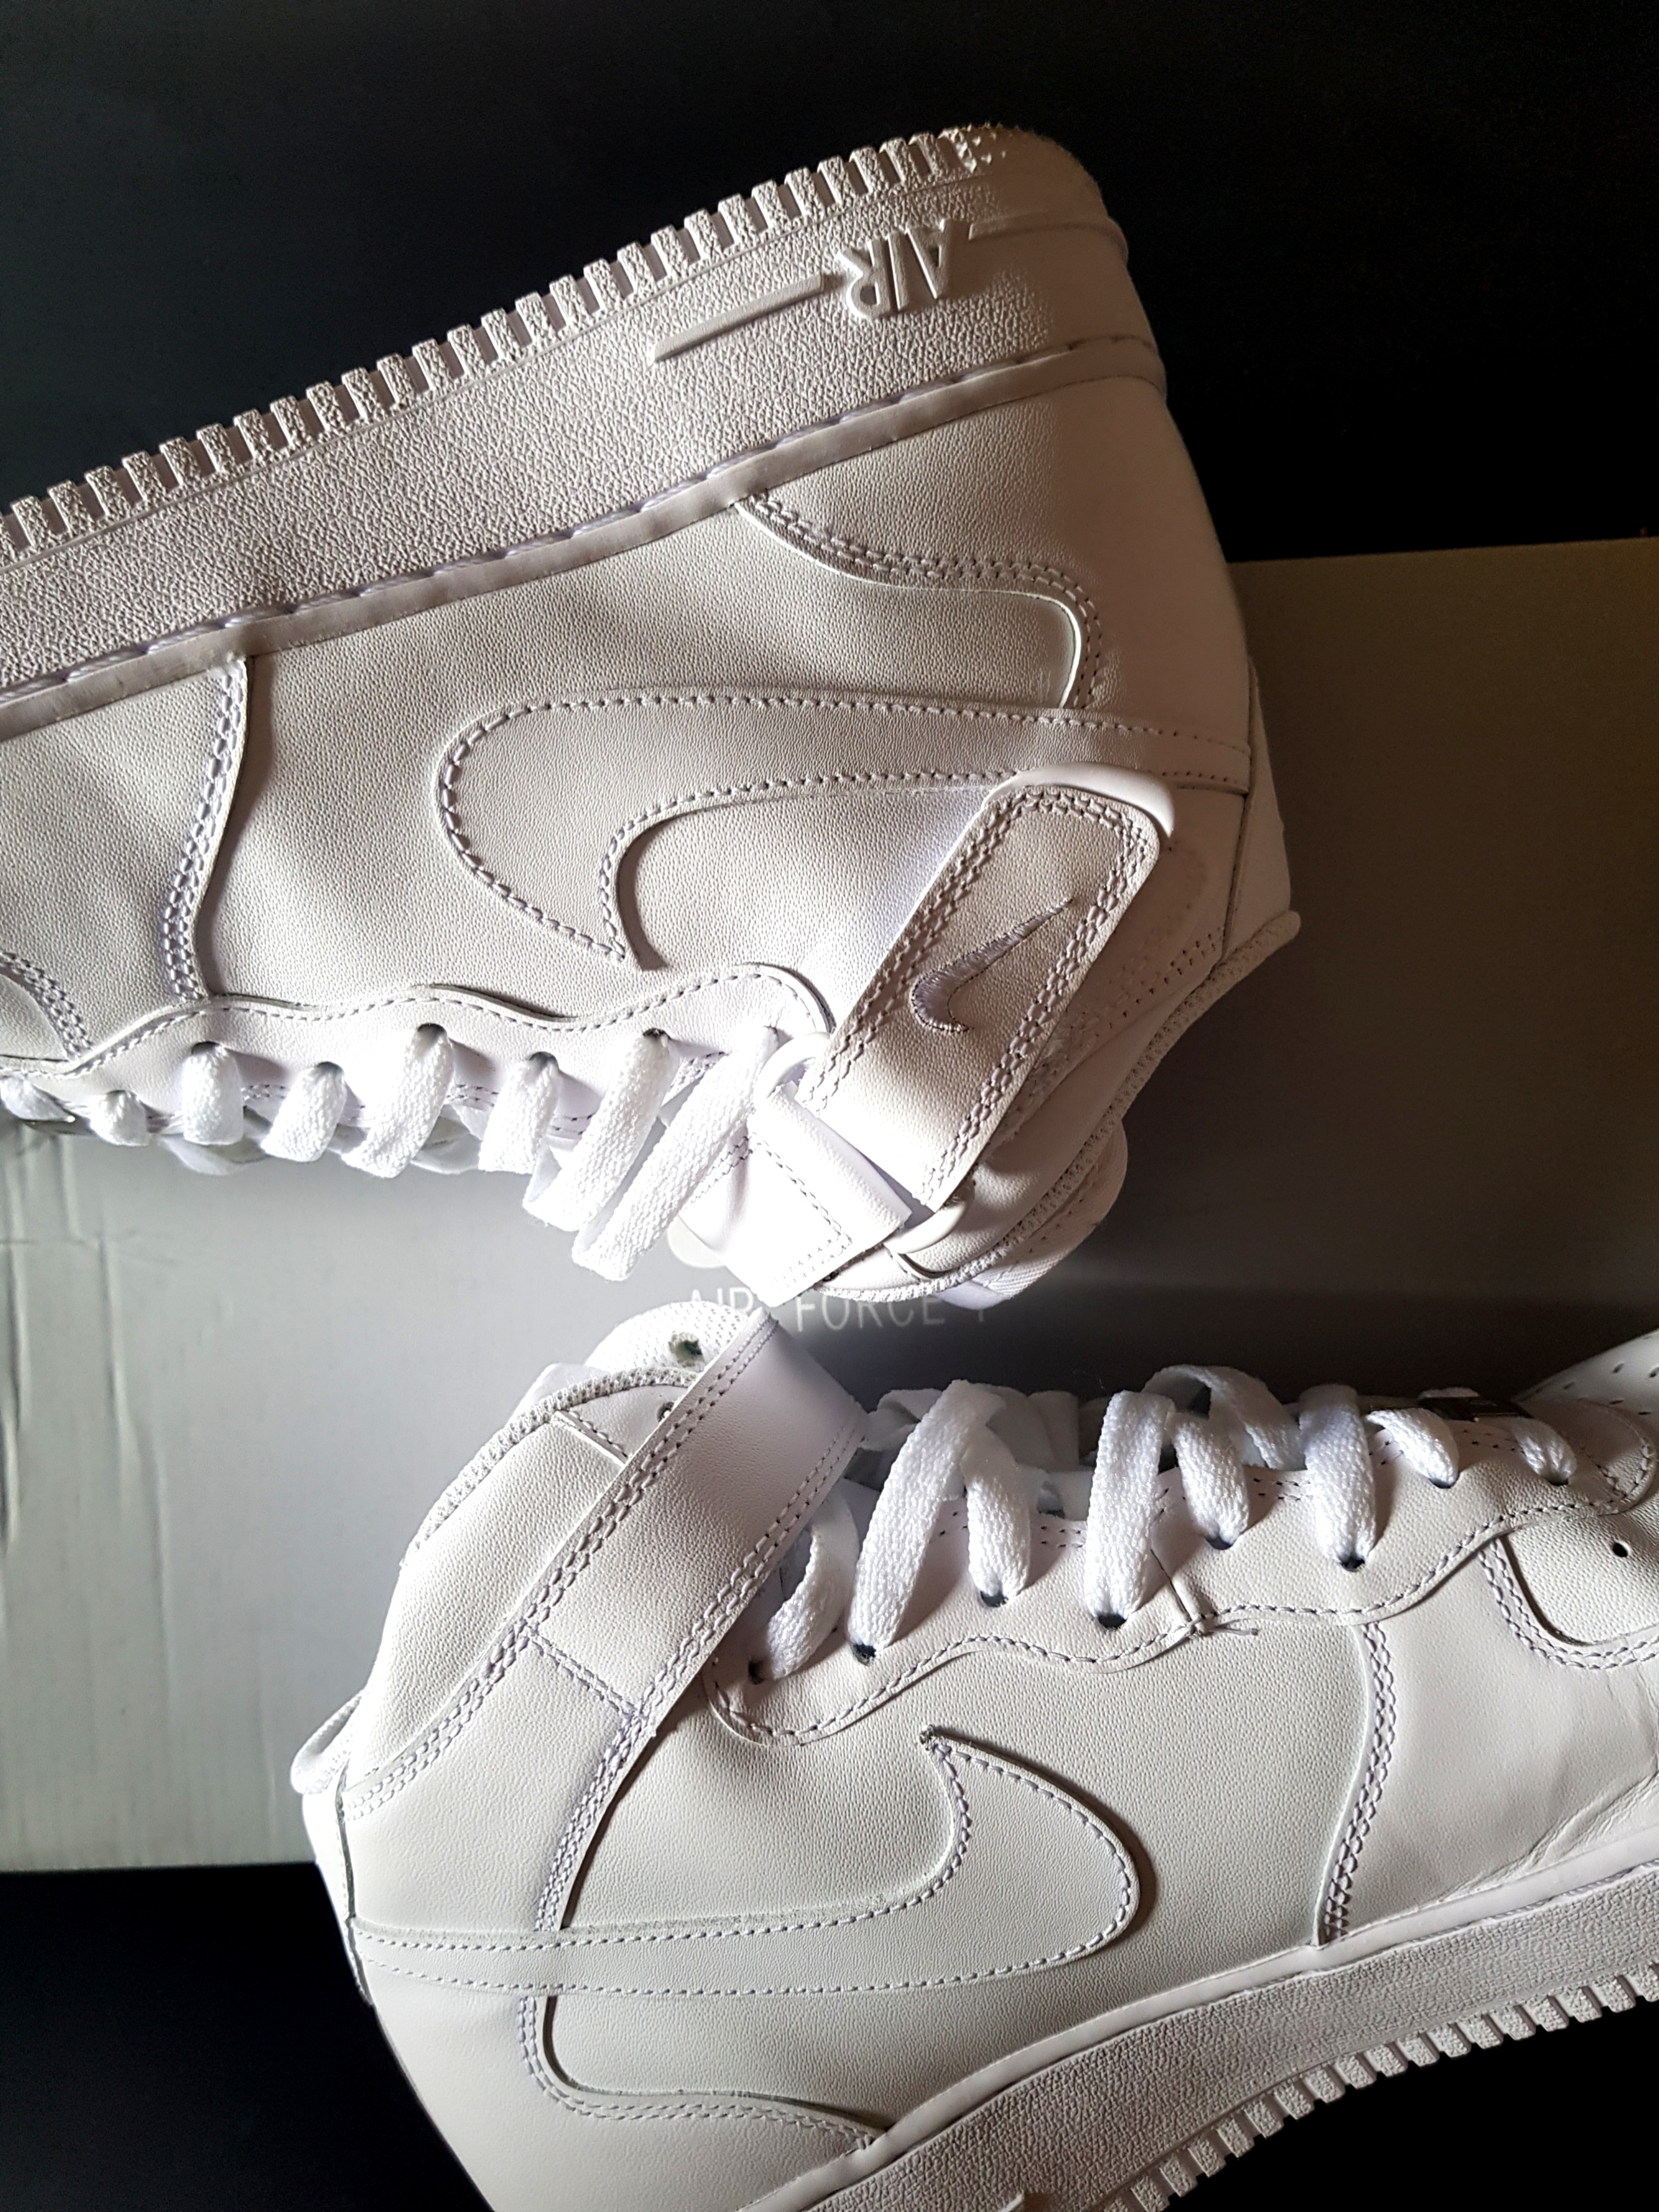 quality design 8ed4d 7ec15 Nike Airforce 1 Mid White, Men s Fashion, Footwear, Sneakers on Carousell